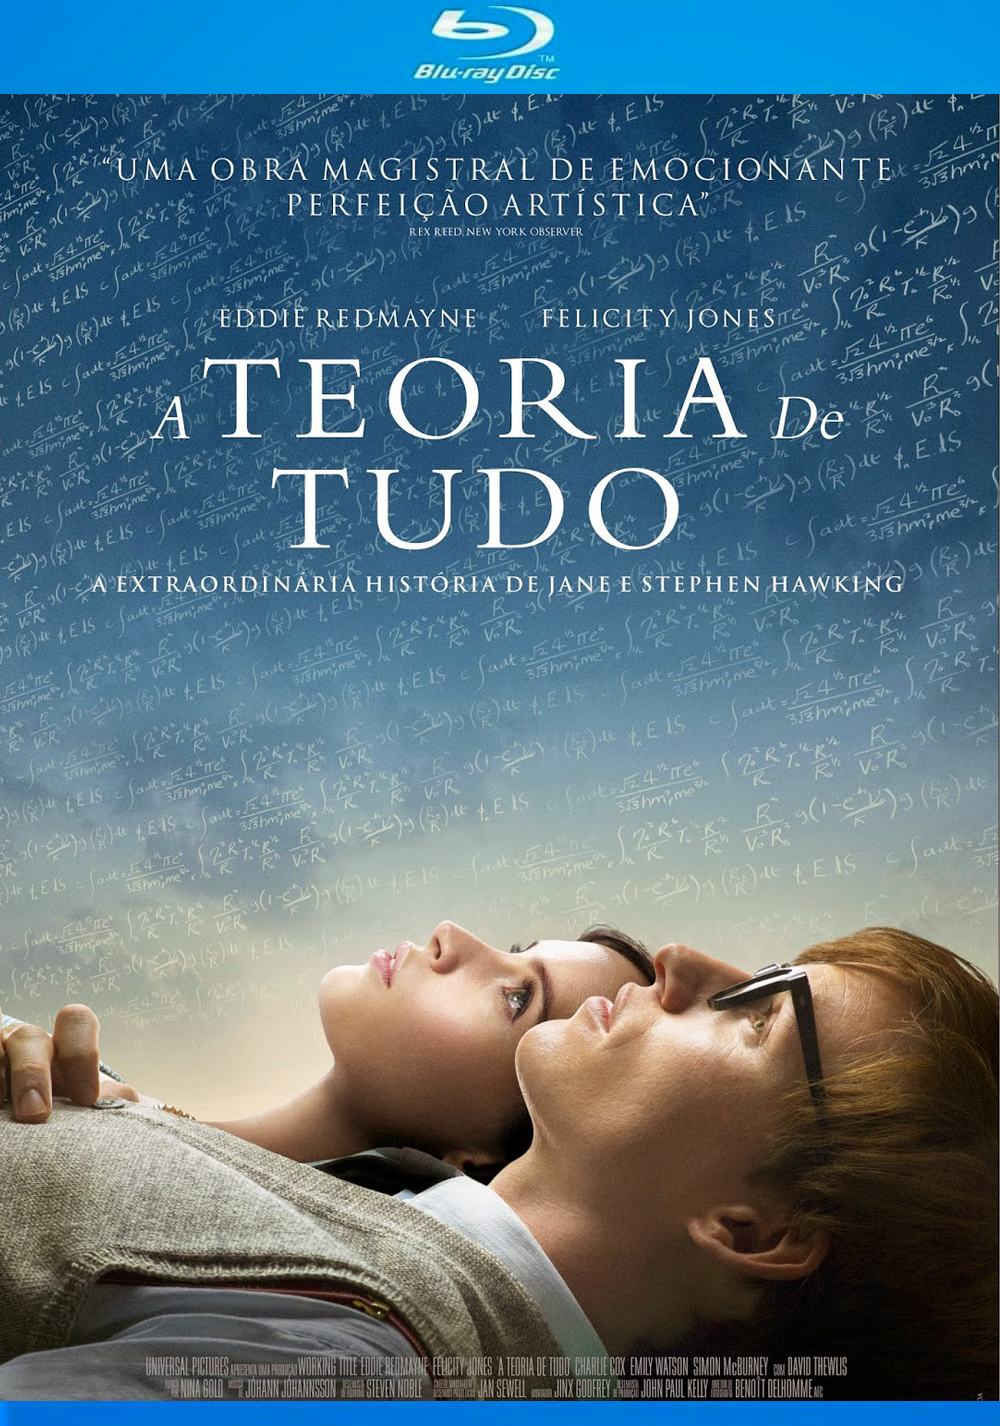 Download A Teoria de Tudo (2014) - Dublado AVI + MP4 720p BRRip MEGA